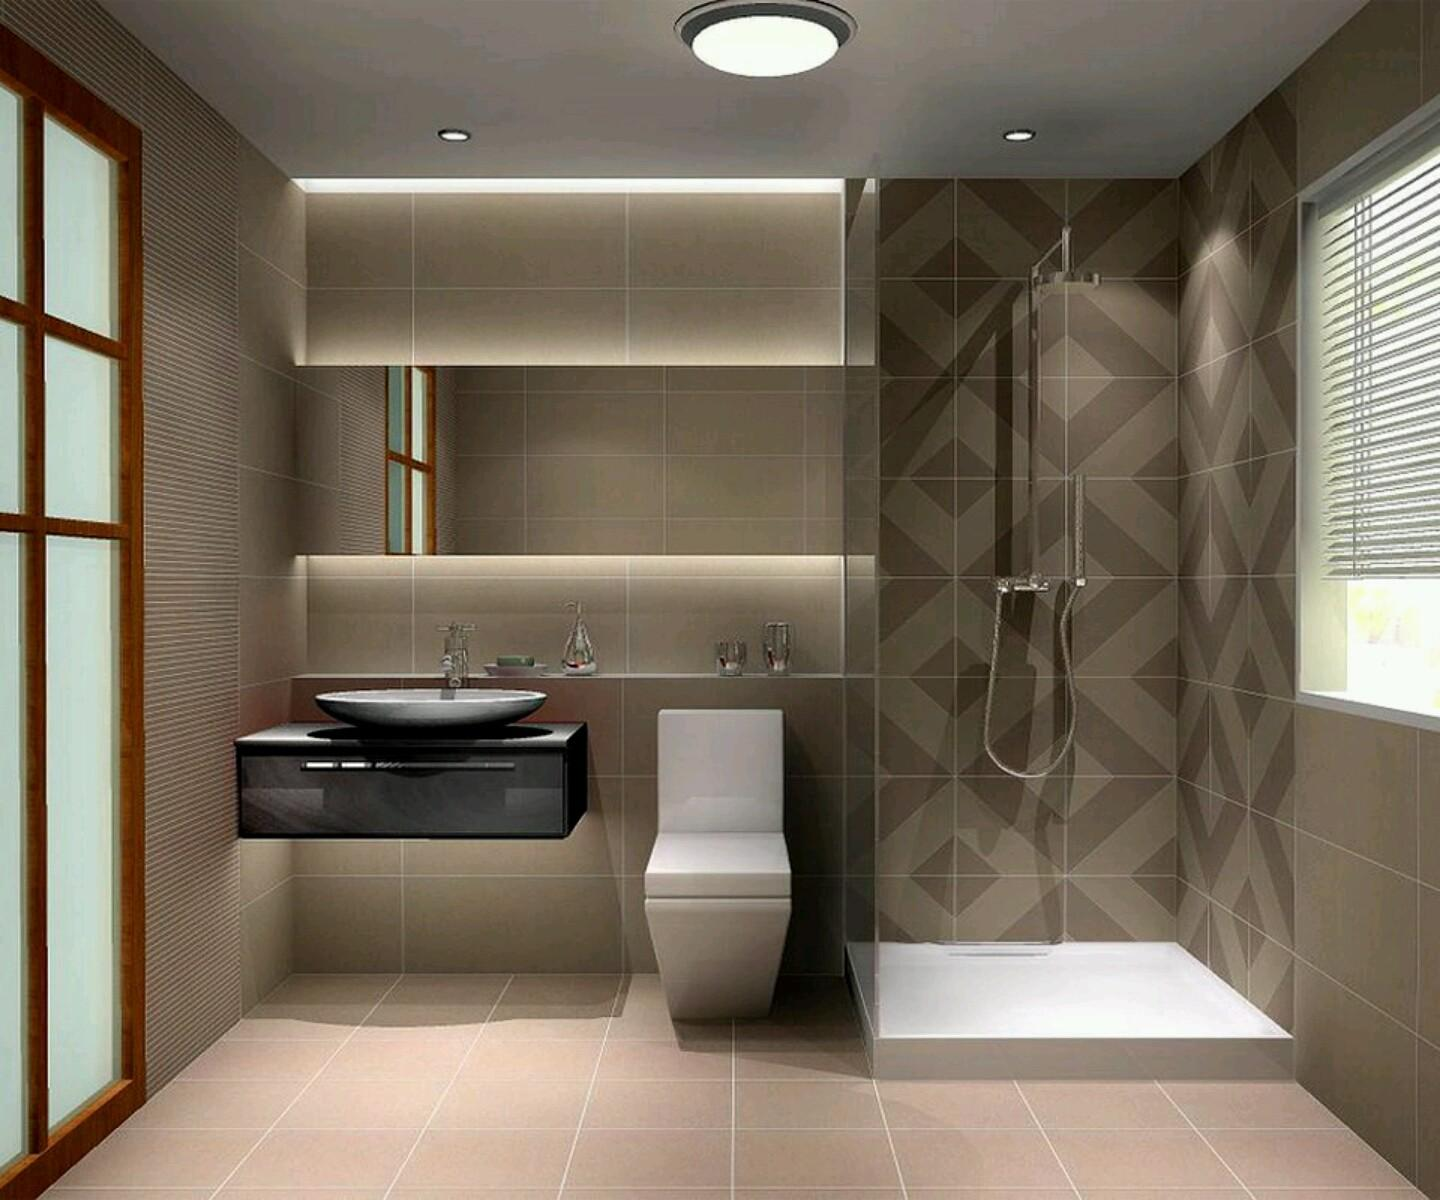 Contemporary Bathroom Design Images Image Of Bathroom And Closet